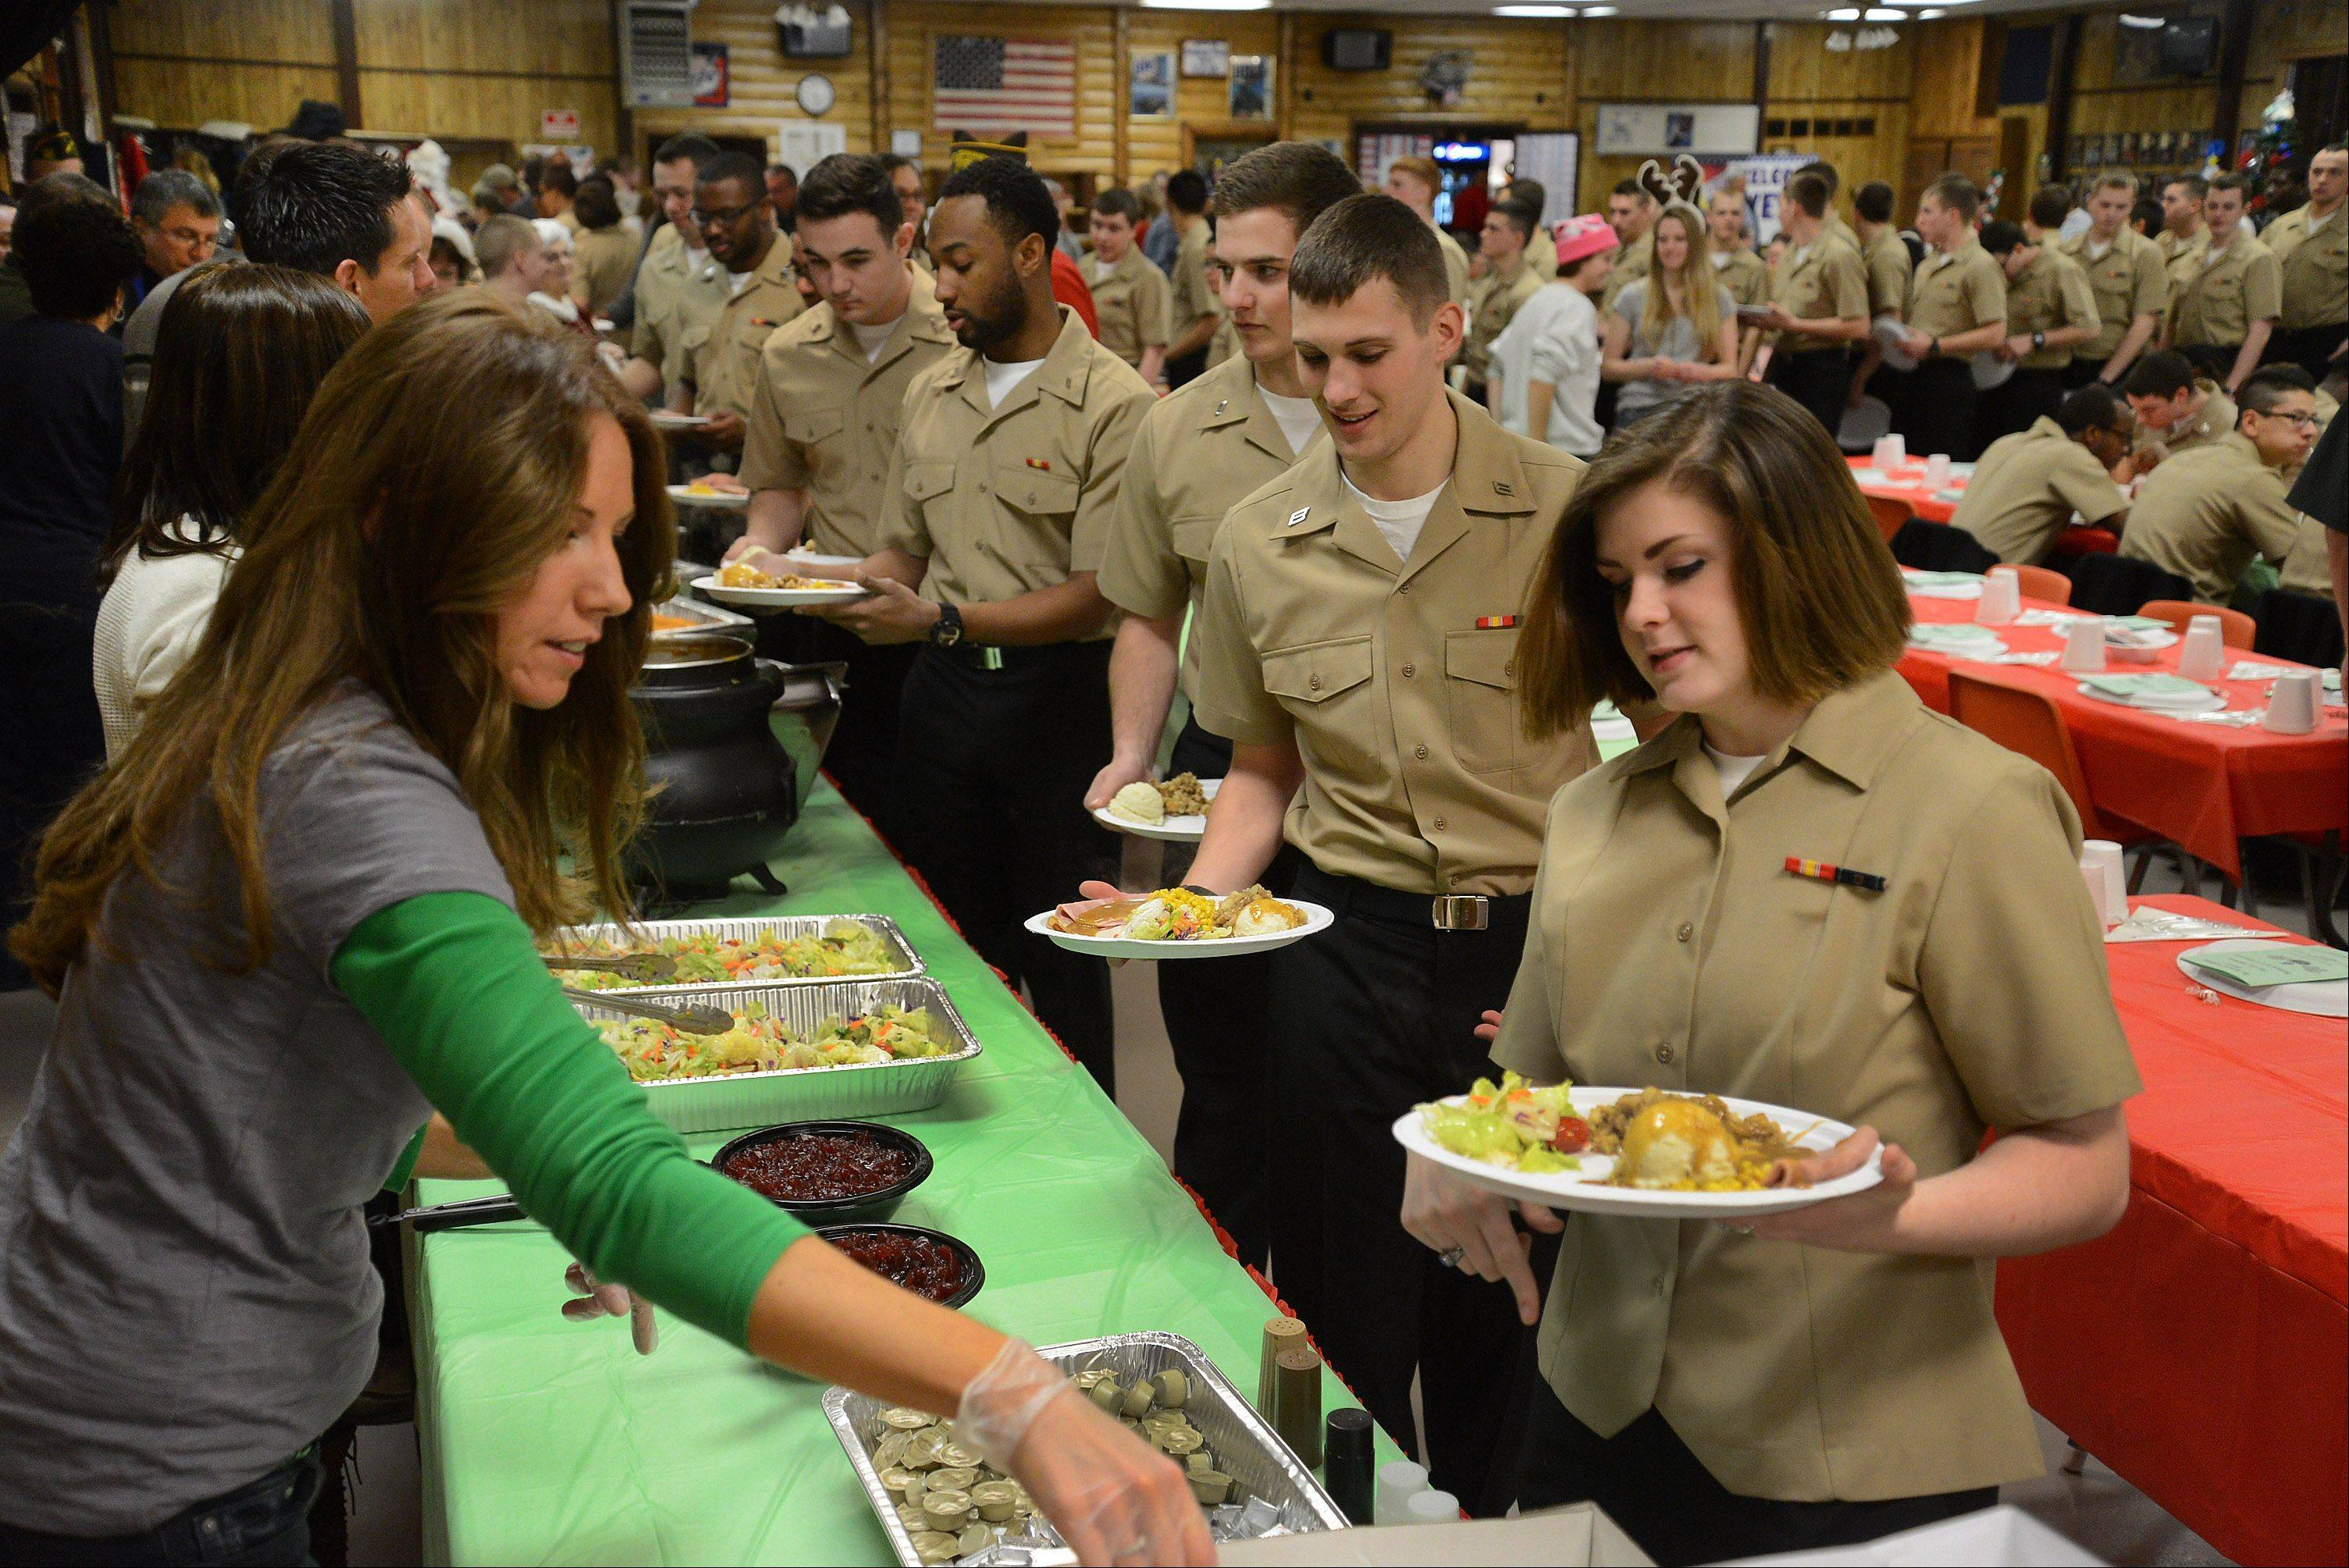 First time volunteer Julie Besson of Antioch, left, serves up cranberry and rolls Saturday as the VFW in Antioch hosted 350 sailors from Great Lakes and 50 veterans from Lovell and Hines hospitals for a full Christmas dinner .